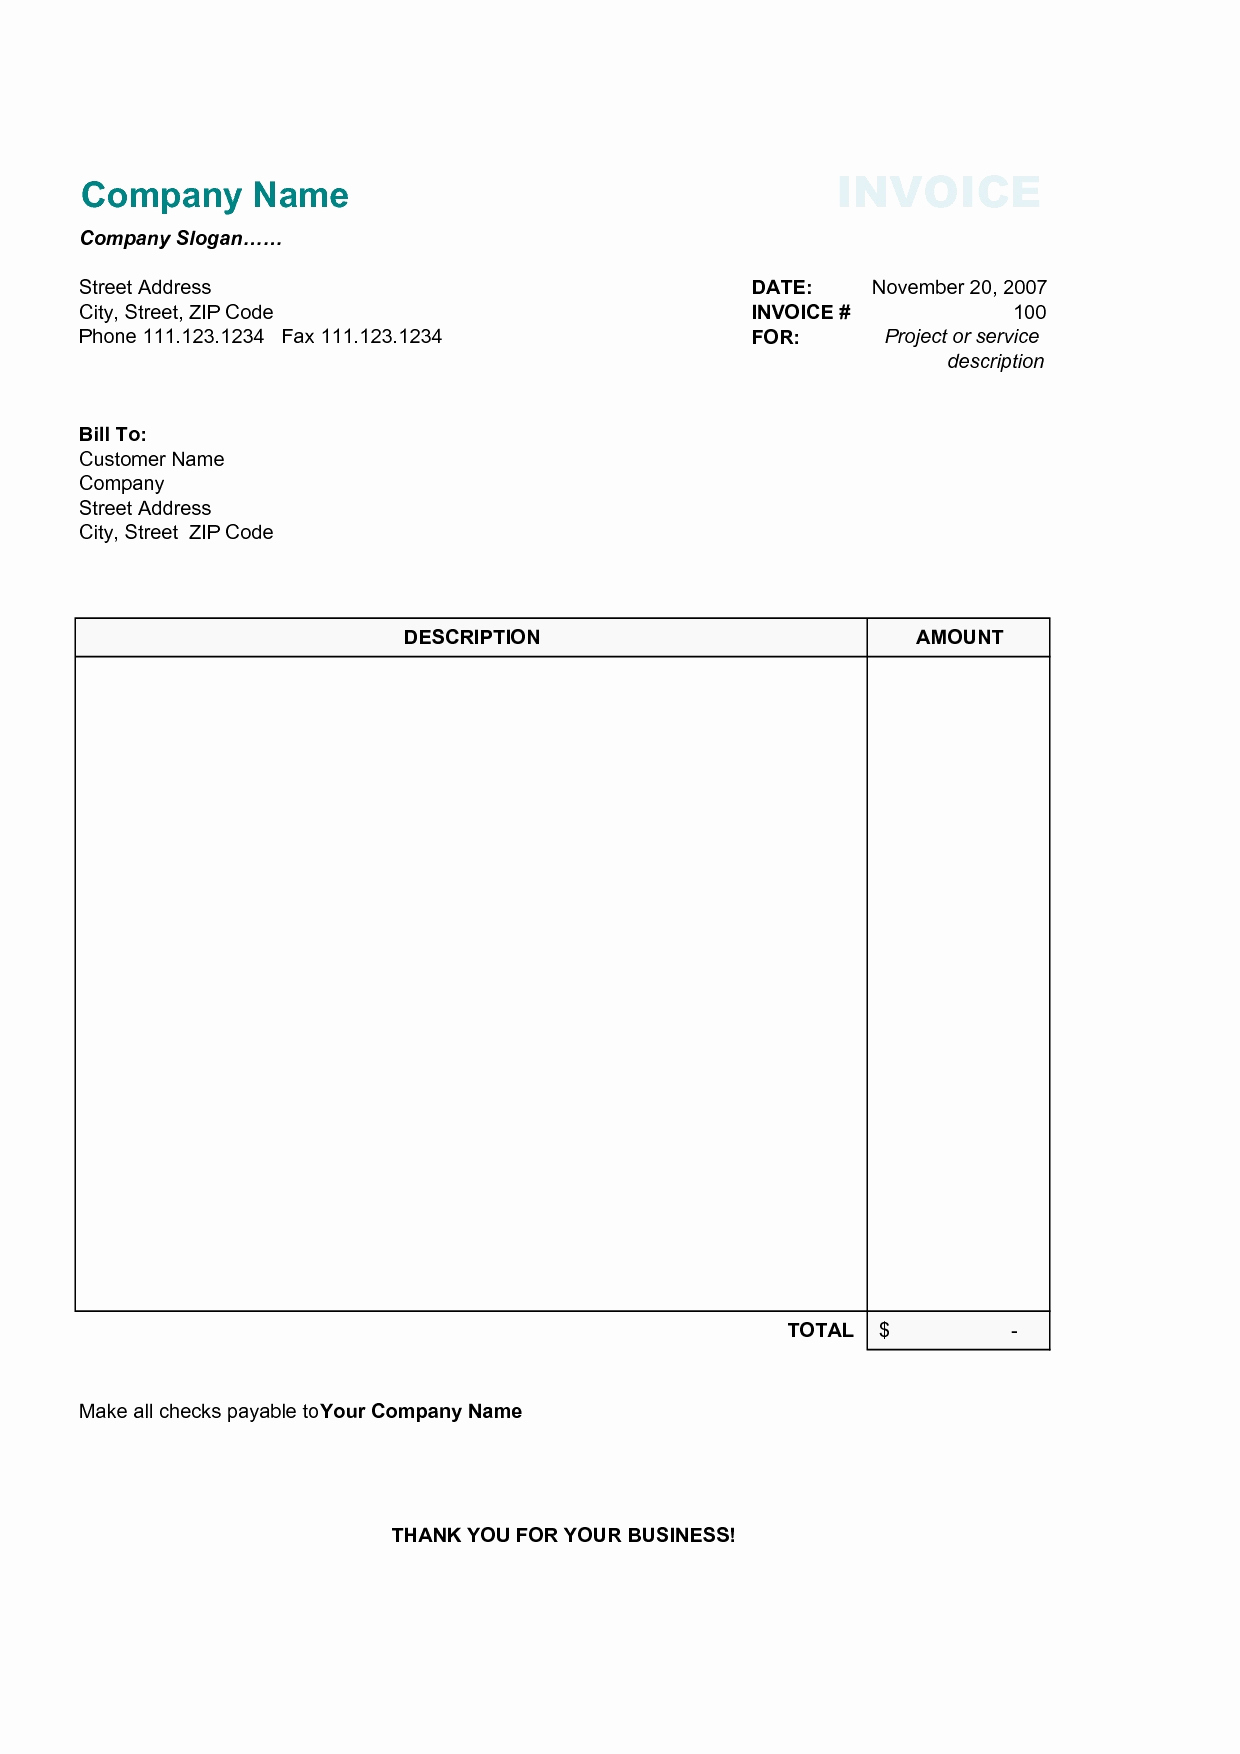 Quickbooks Templates Gallery Awesome Quickbooks Trucking Invoice With Trucking Invoice Template